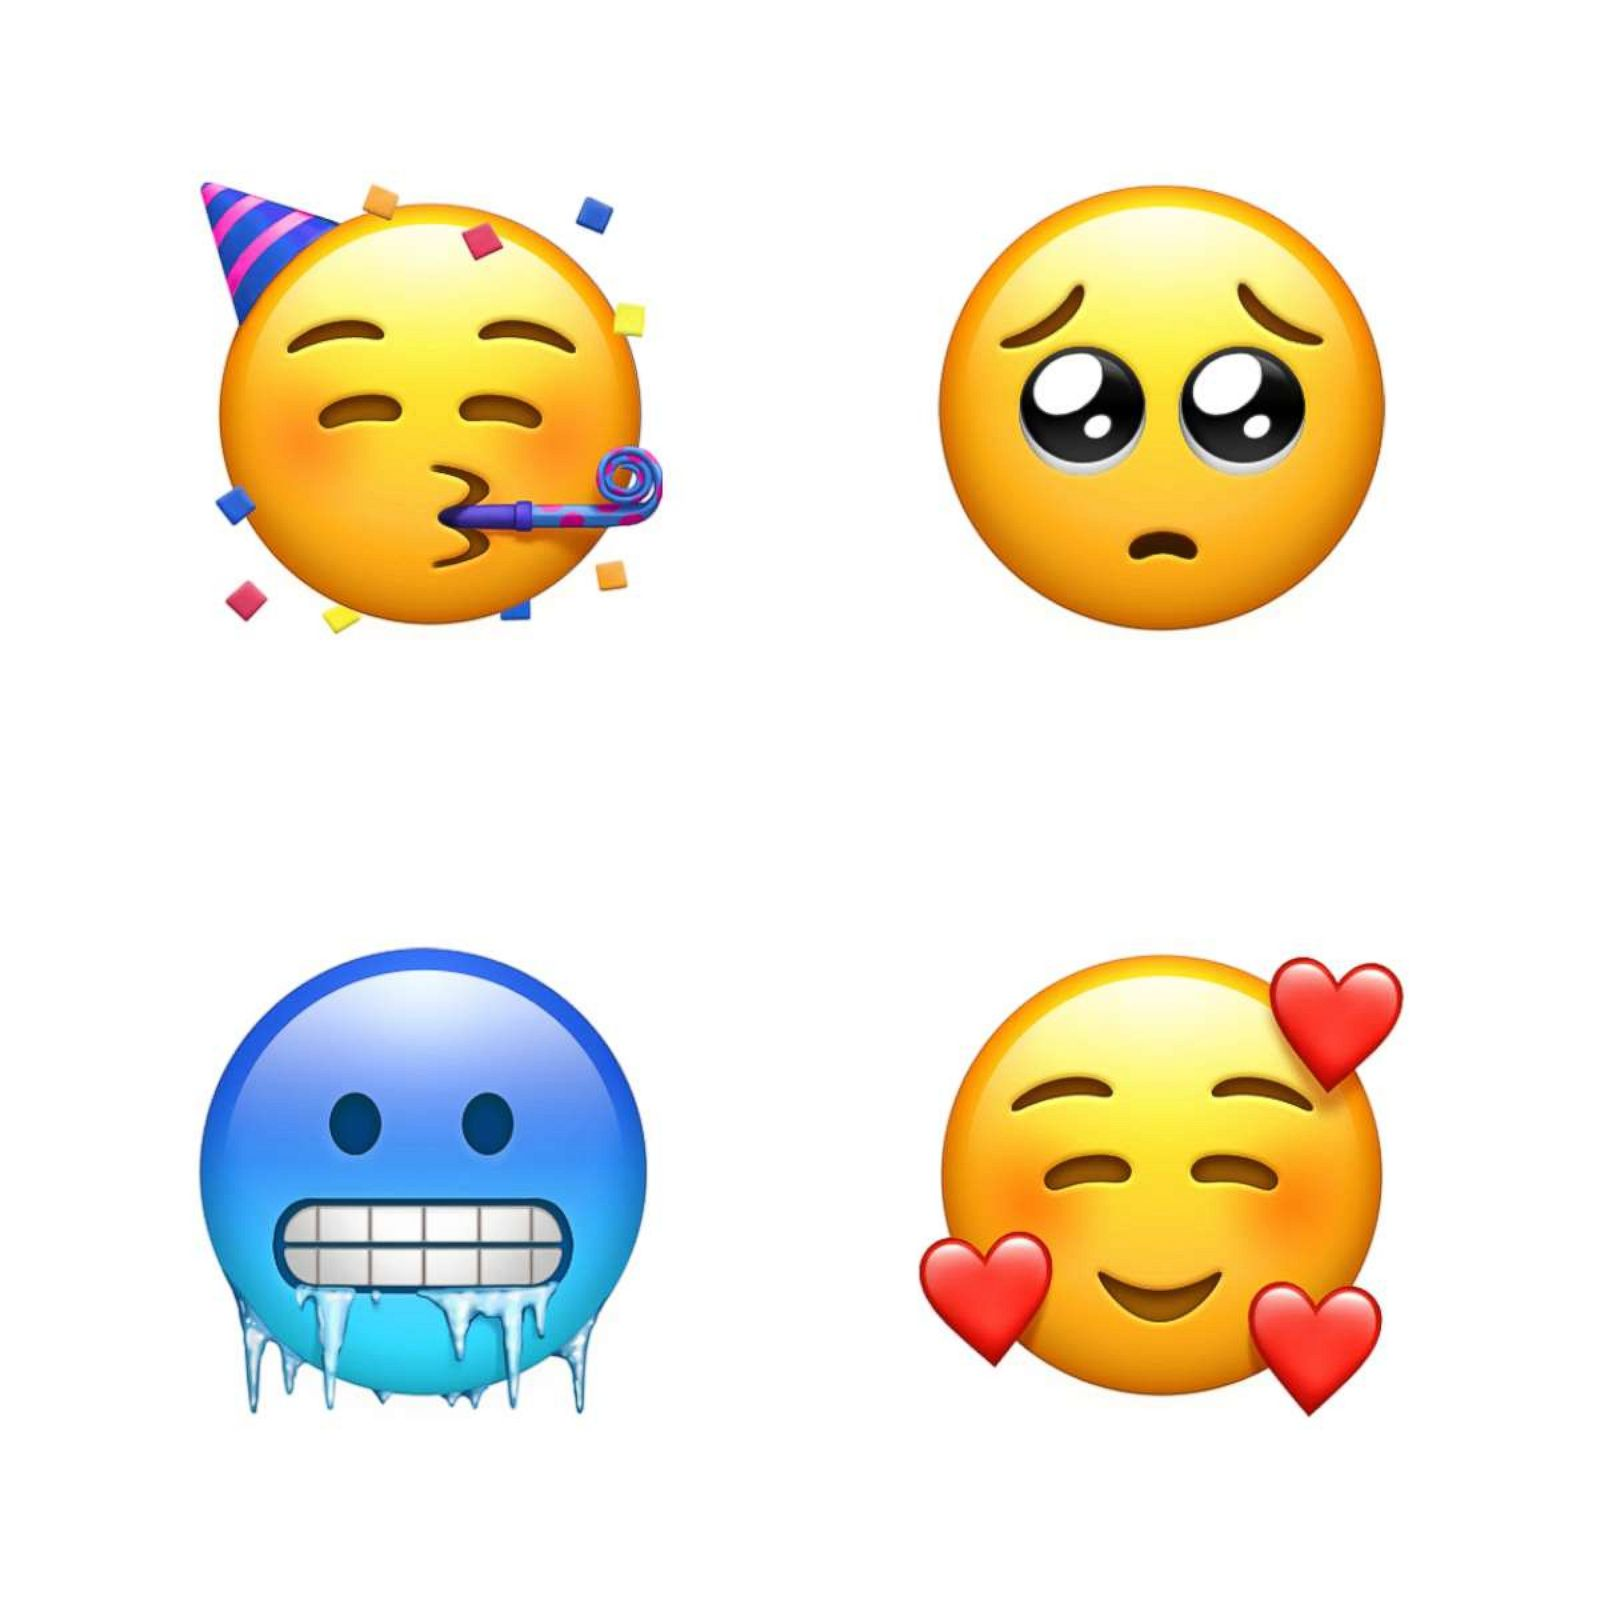 Marvelous 70 New Emojis Are Coming Soon Including More Hairstyles Download Free Architecture Designs Scobabritishbridgeorg